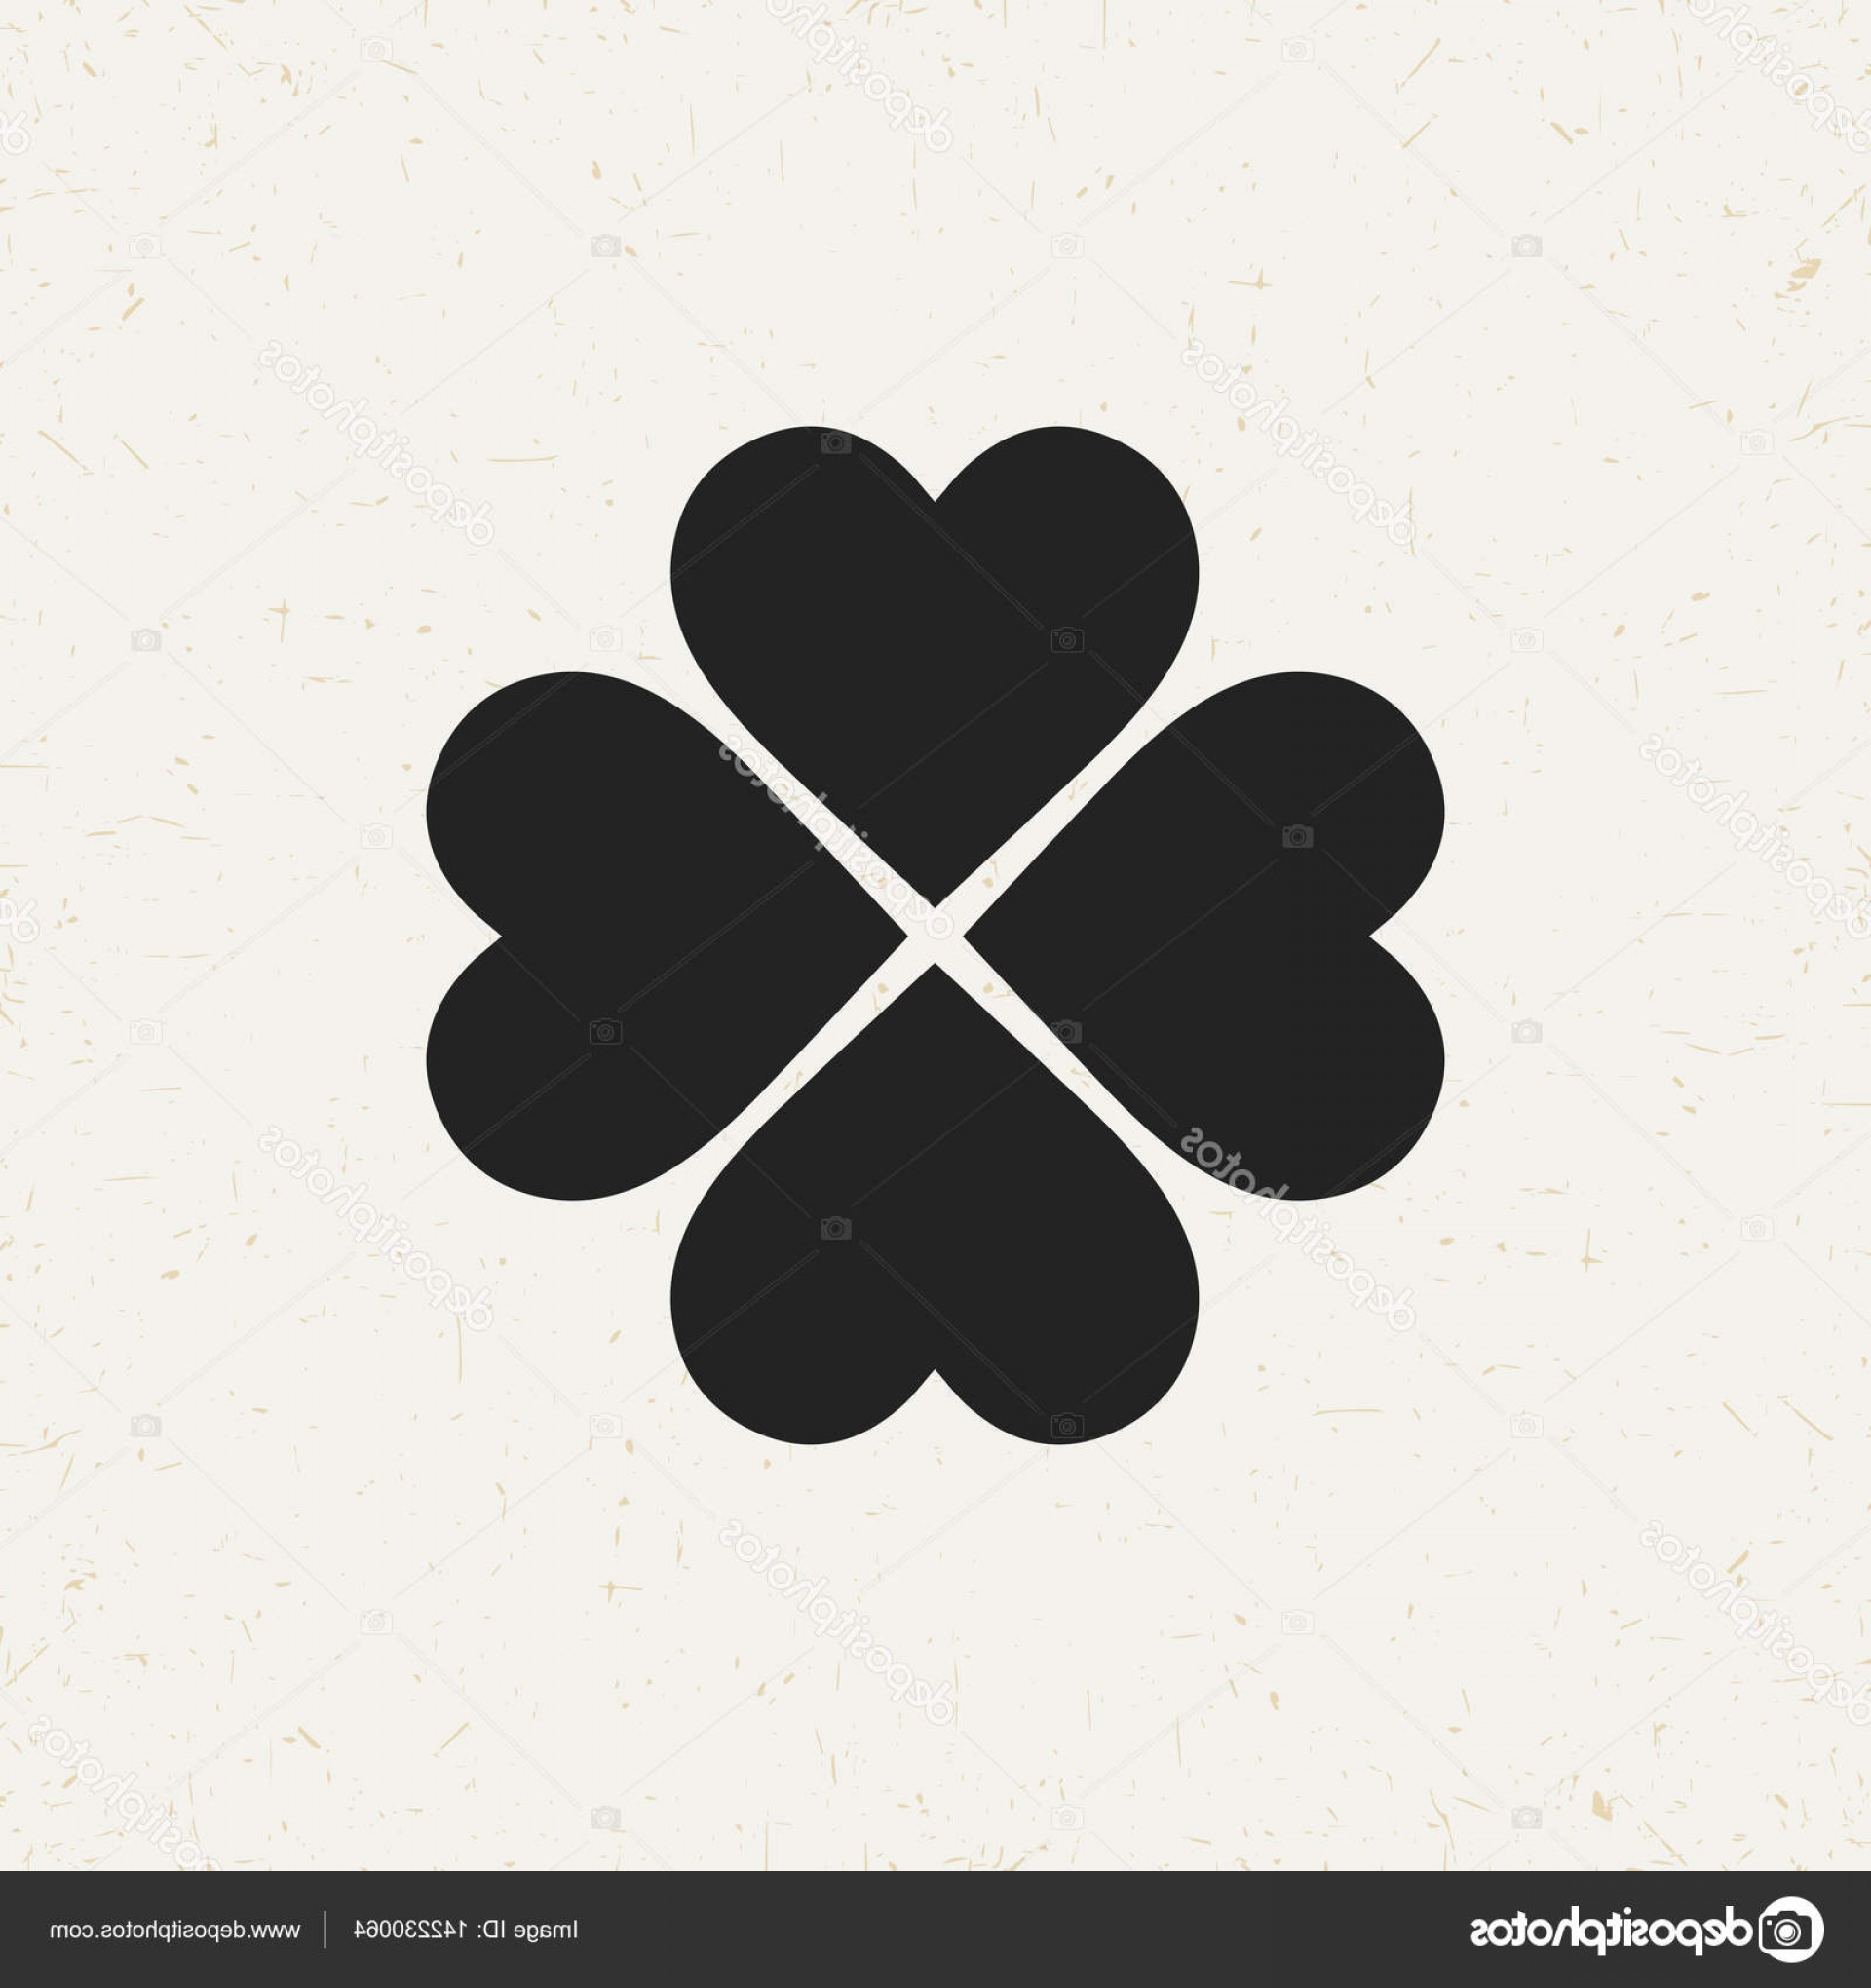 Four Leaf Clover Vector Art Black And White: Stock Illustration Four Leaf Clover Vector Icon